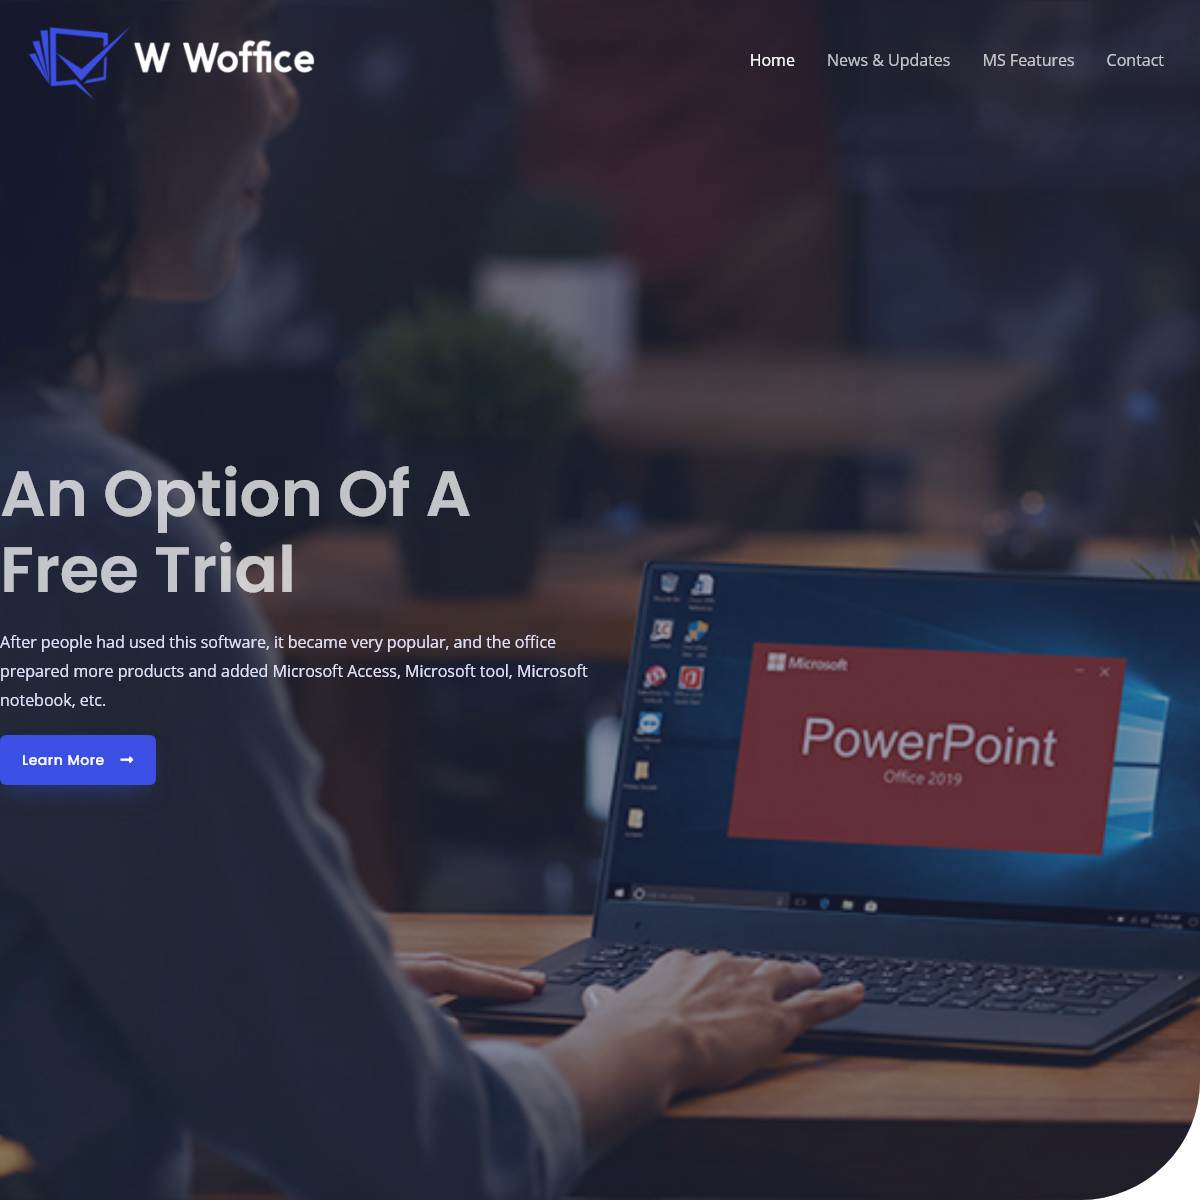 W WOffice - Get Speed, Security And Privacy With The New Microsoft Office